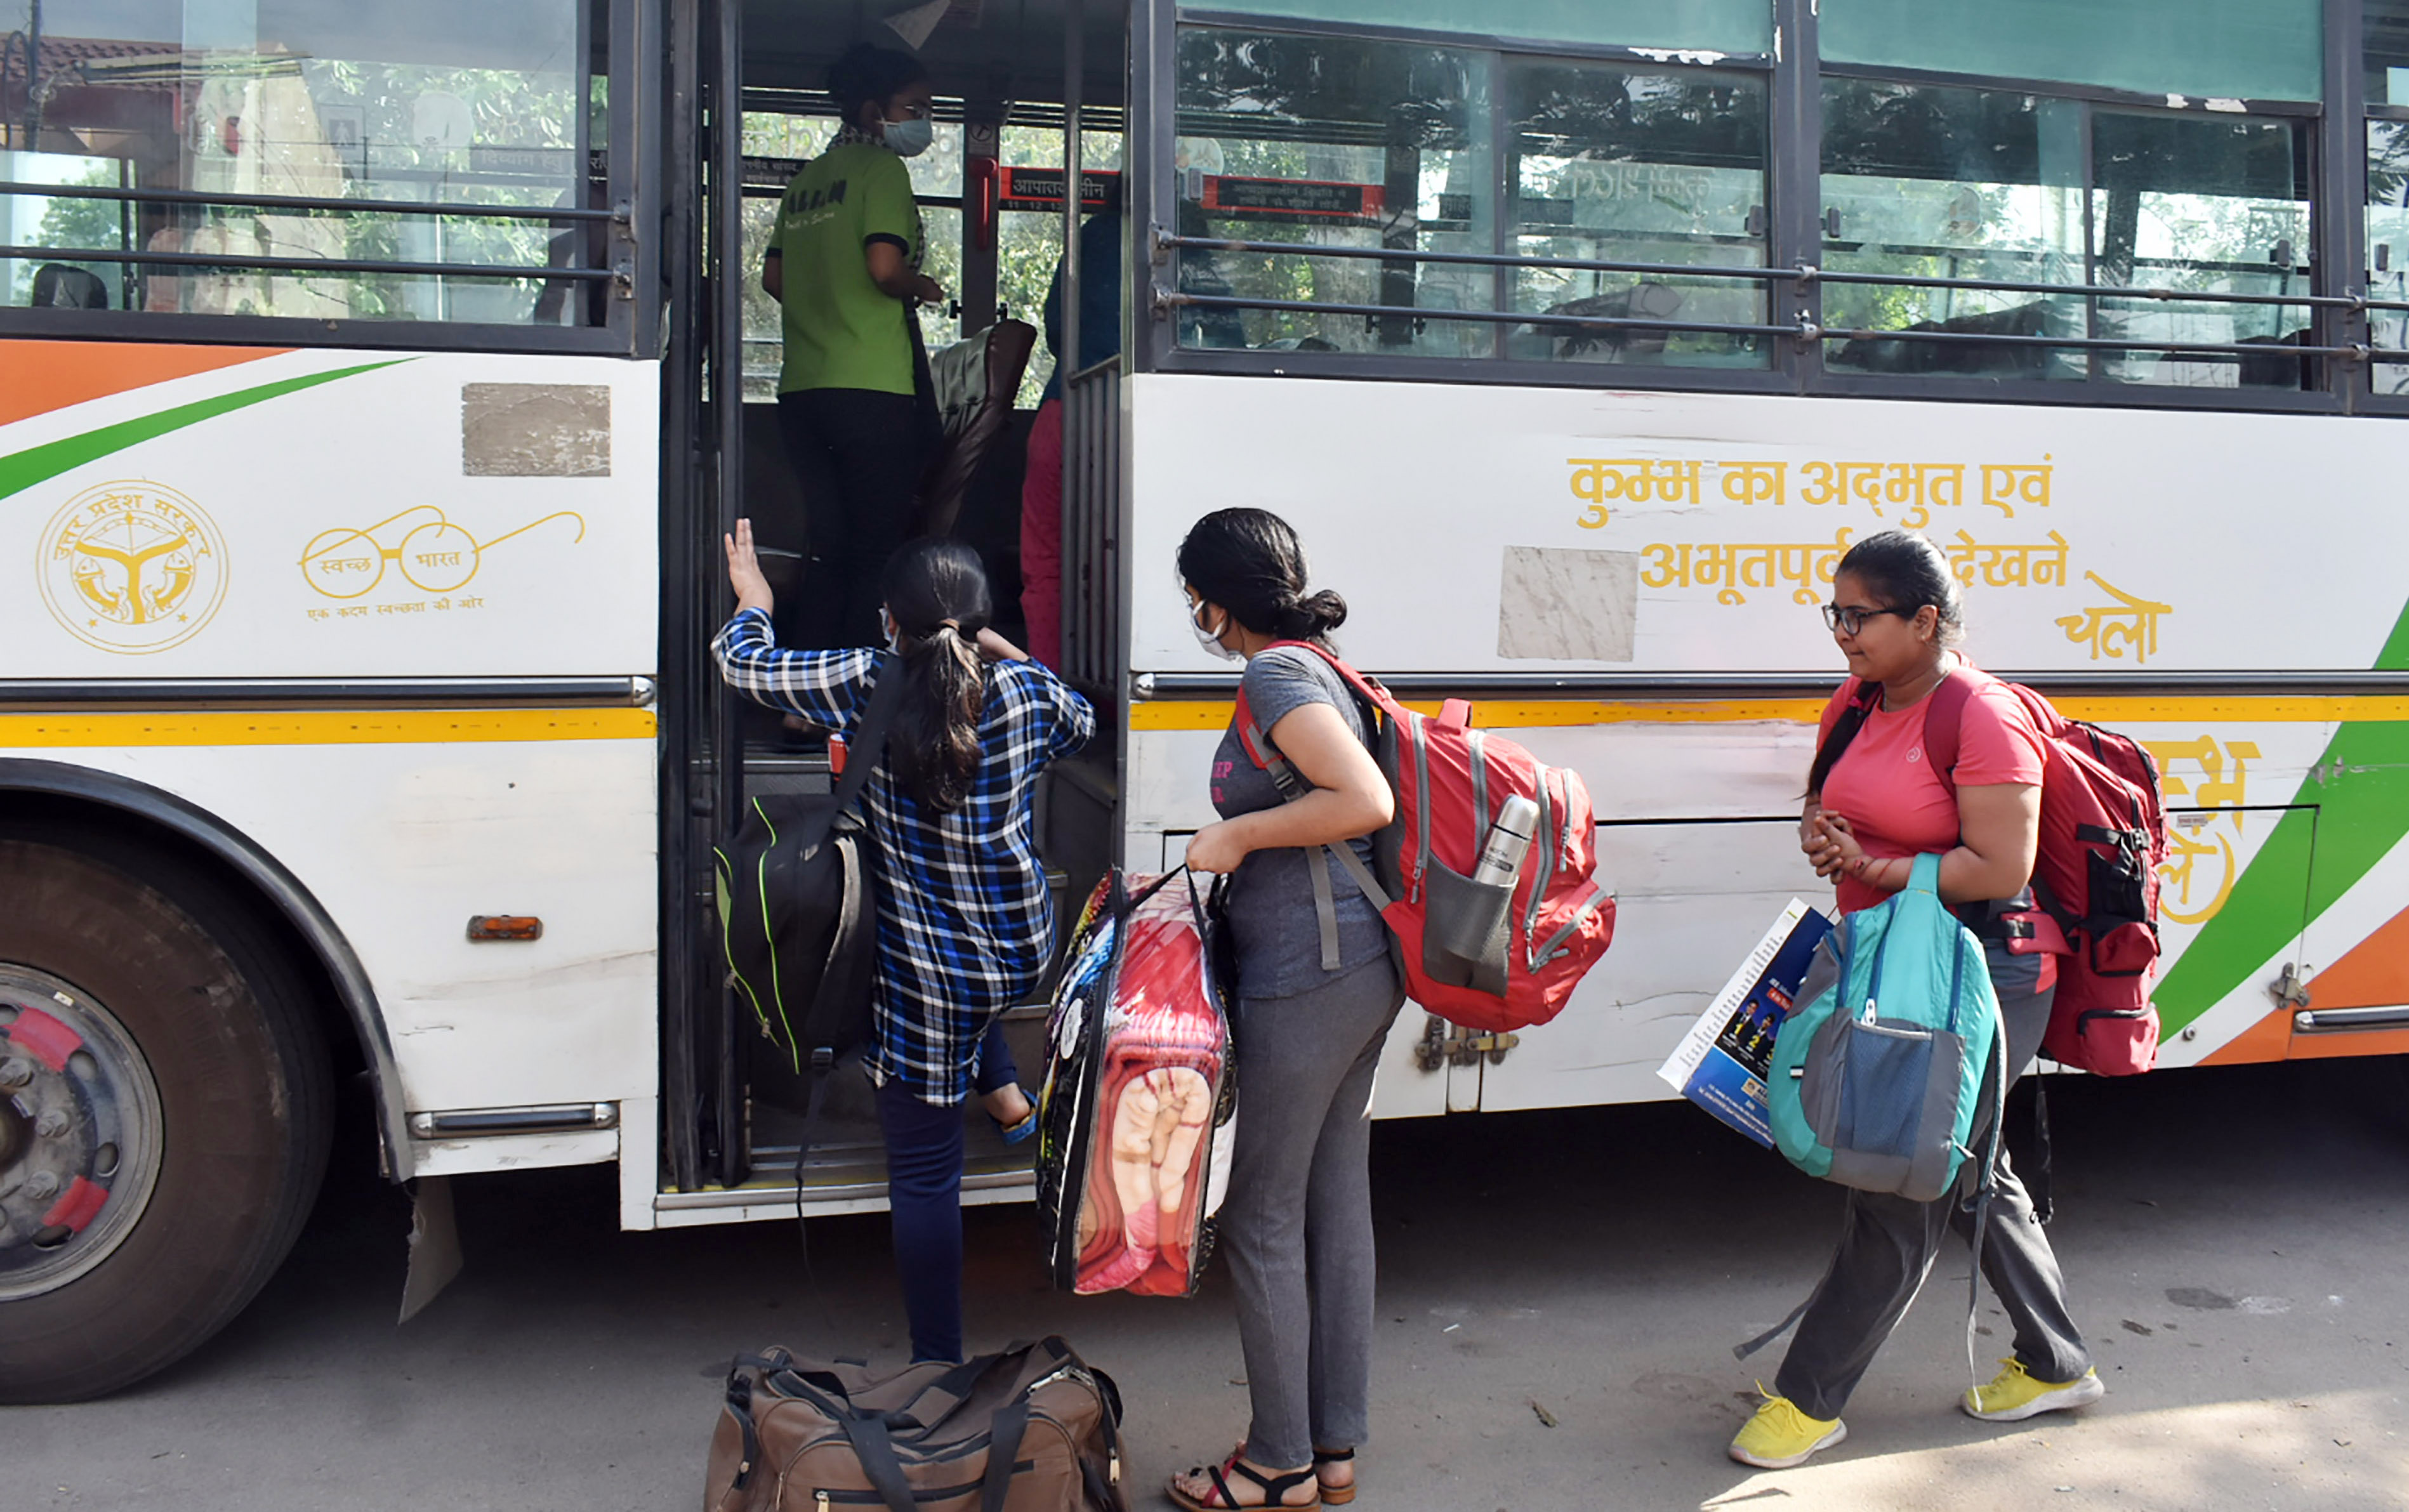 Students who were stranded in Kota due to ongoing COVID-19 nationwide lockdown, leave for their houses after medical checkup as they were brought by U.P. Government buses at a quarantine center, in Prayagraj on Sunday.